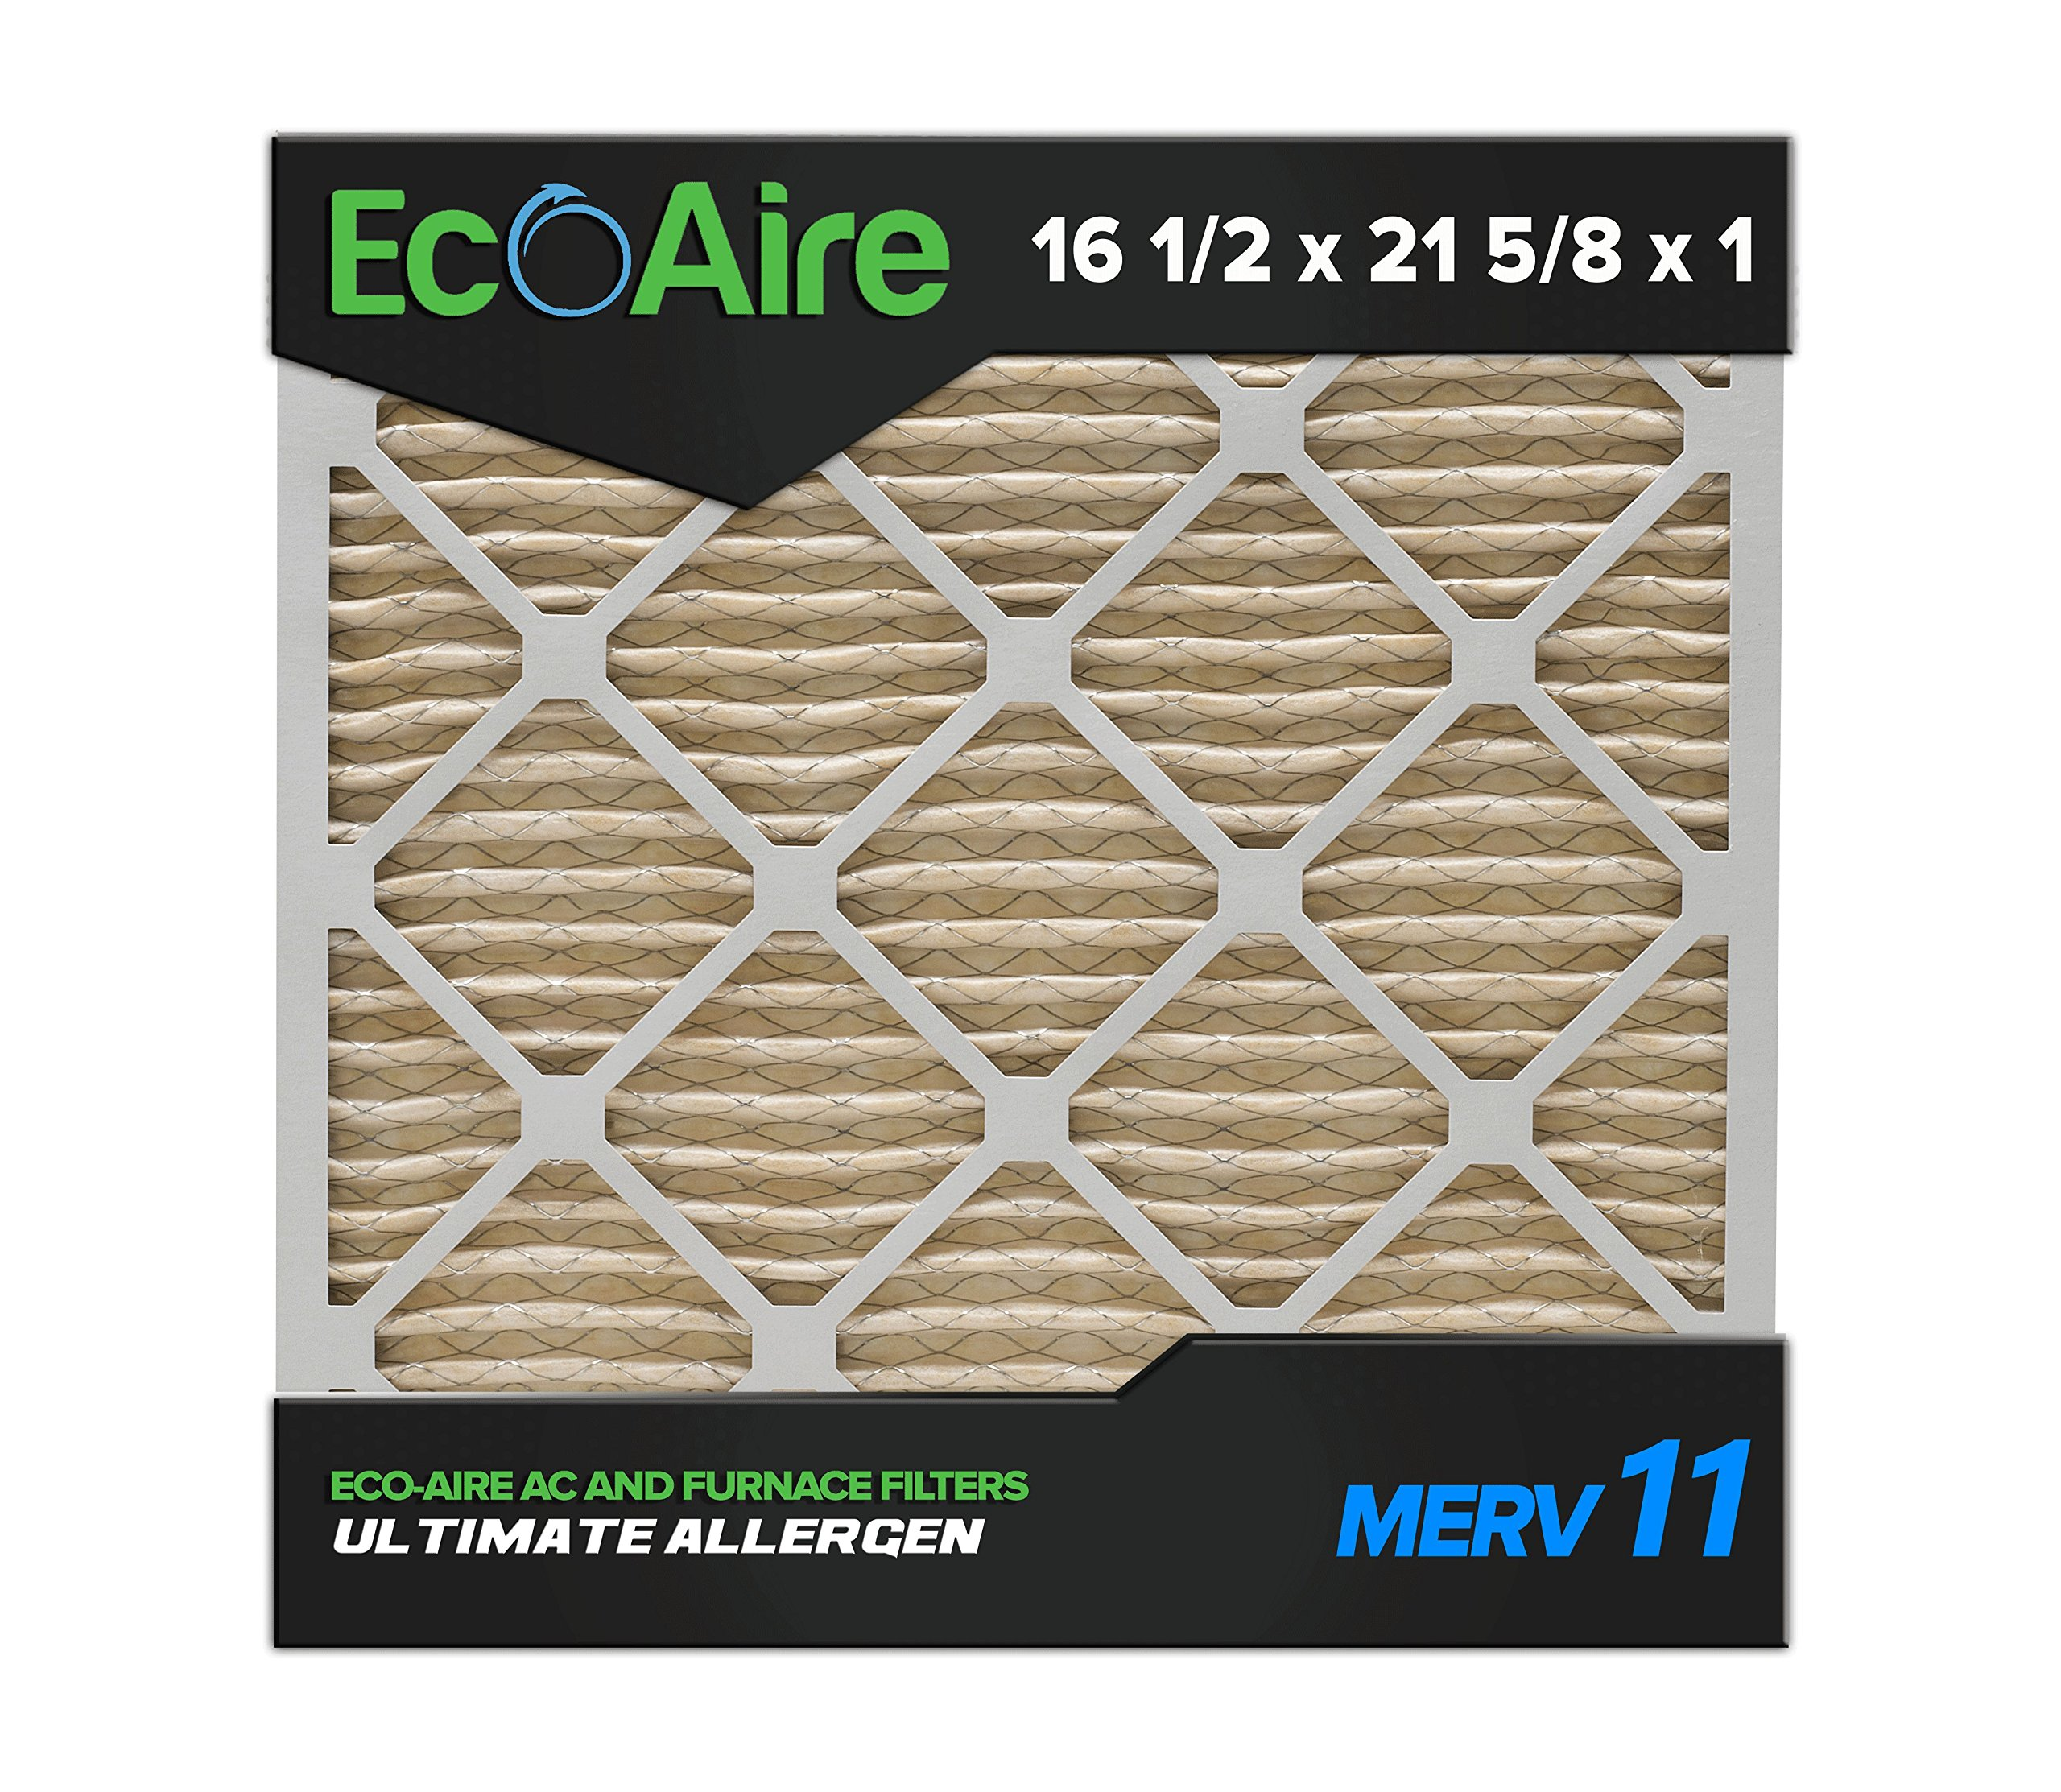 Eco Aire 16 3 8x 2x1 Merv Pleated Air Filter 8 X 21 1 2 1